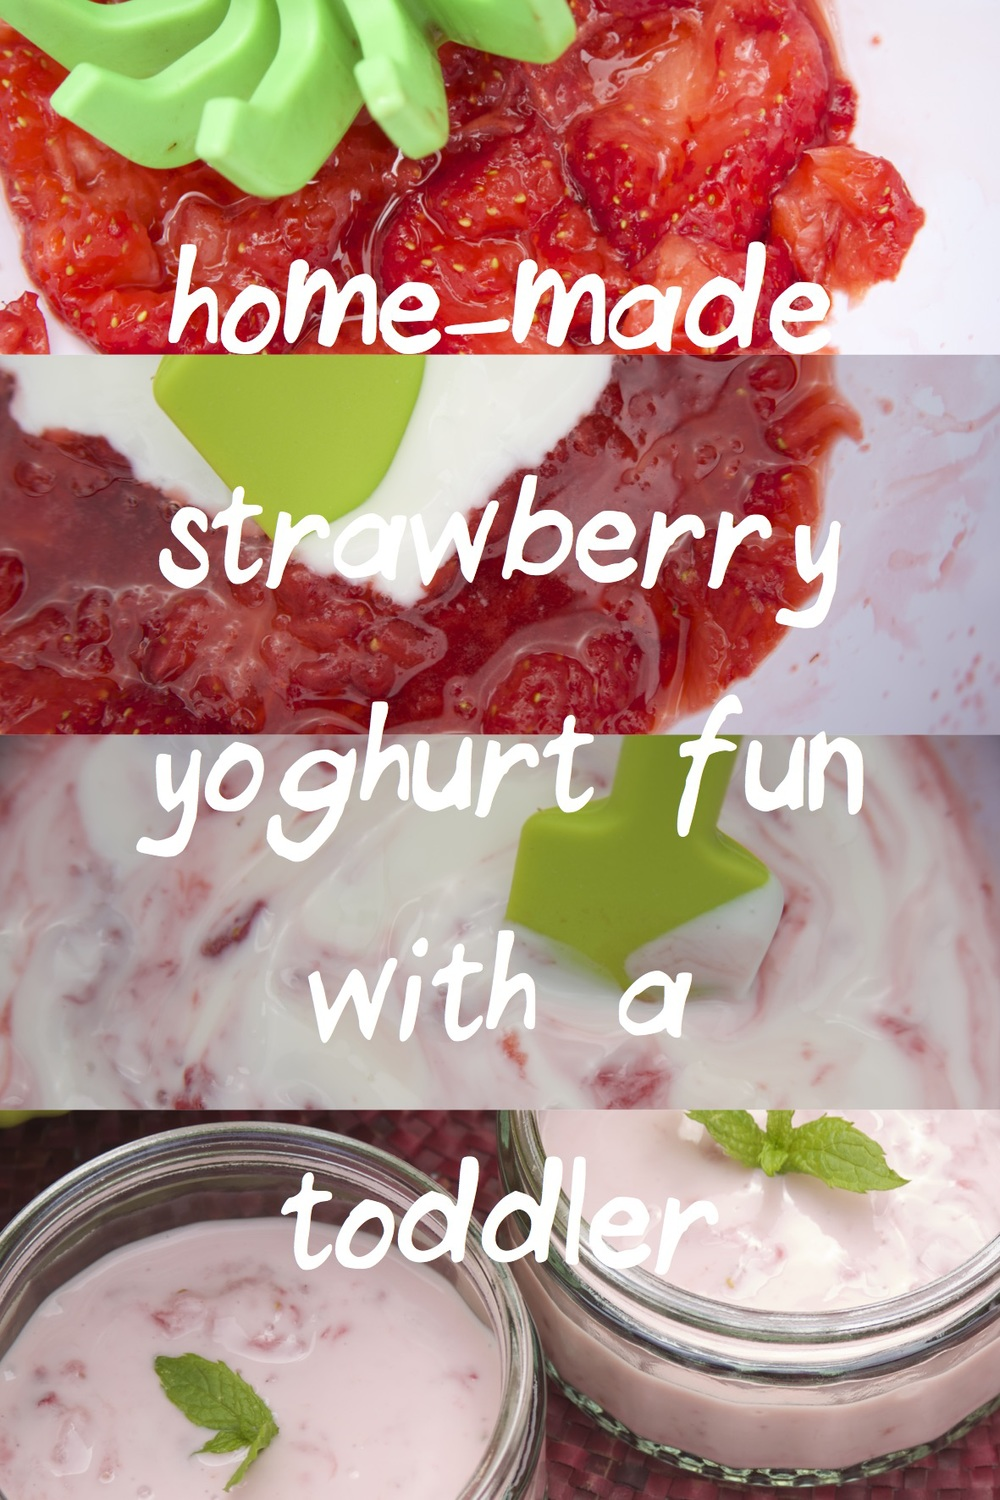 Homemade Strawberry Yoghurt - Tickle Fingers